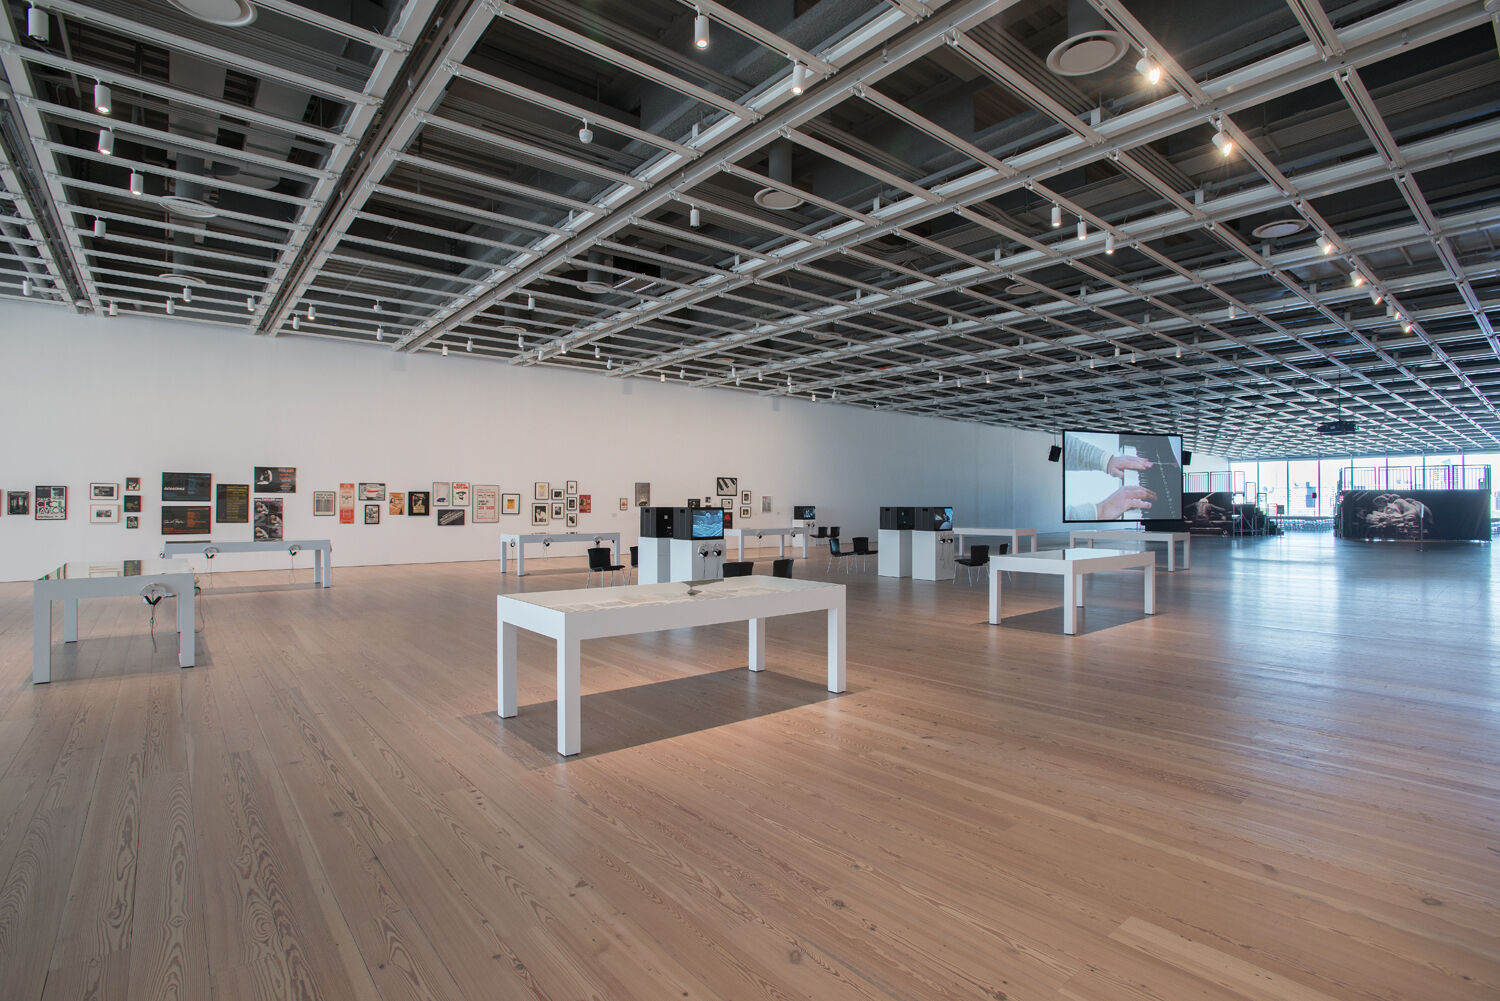 A gallery filled with art.